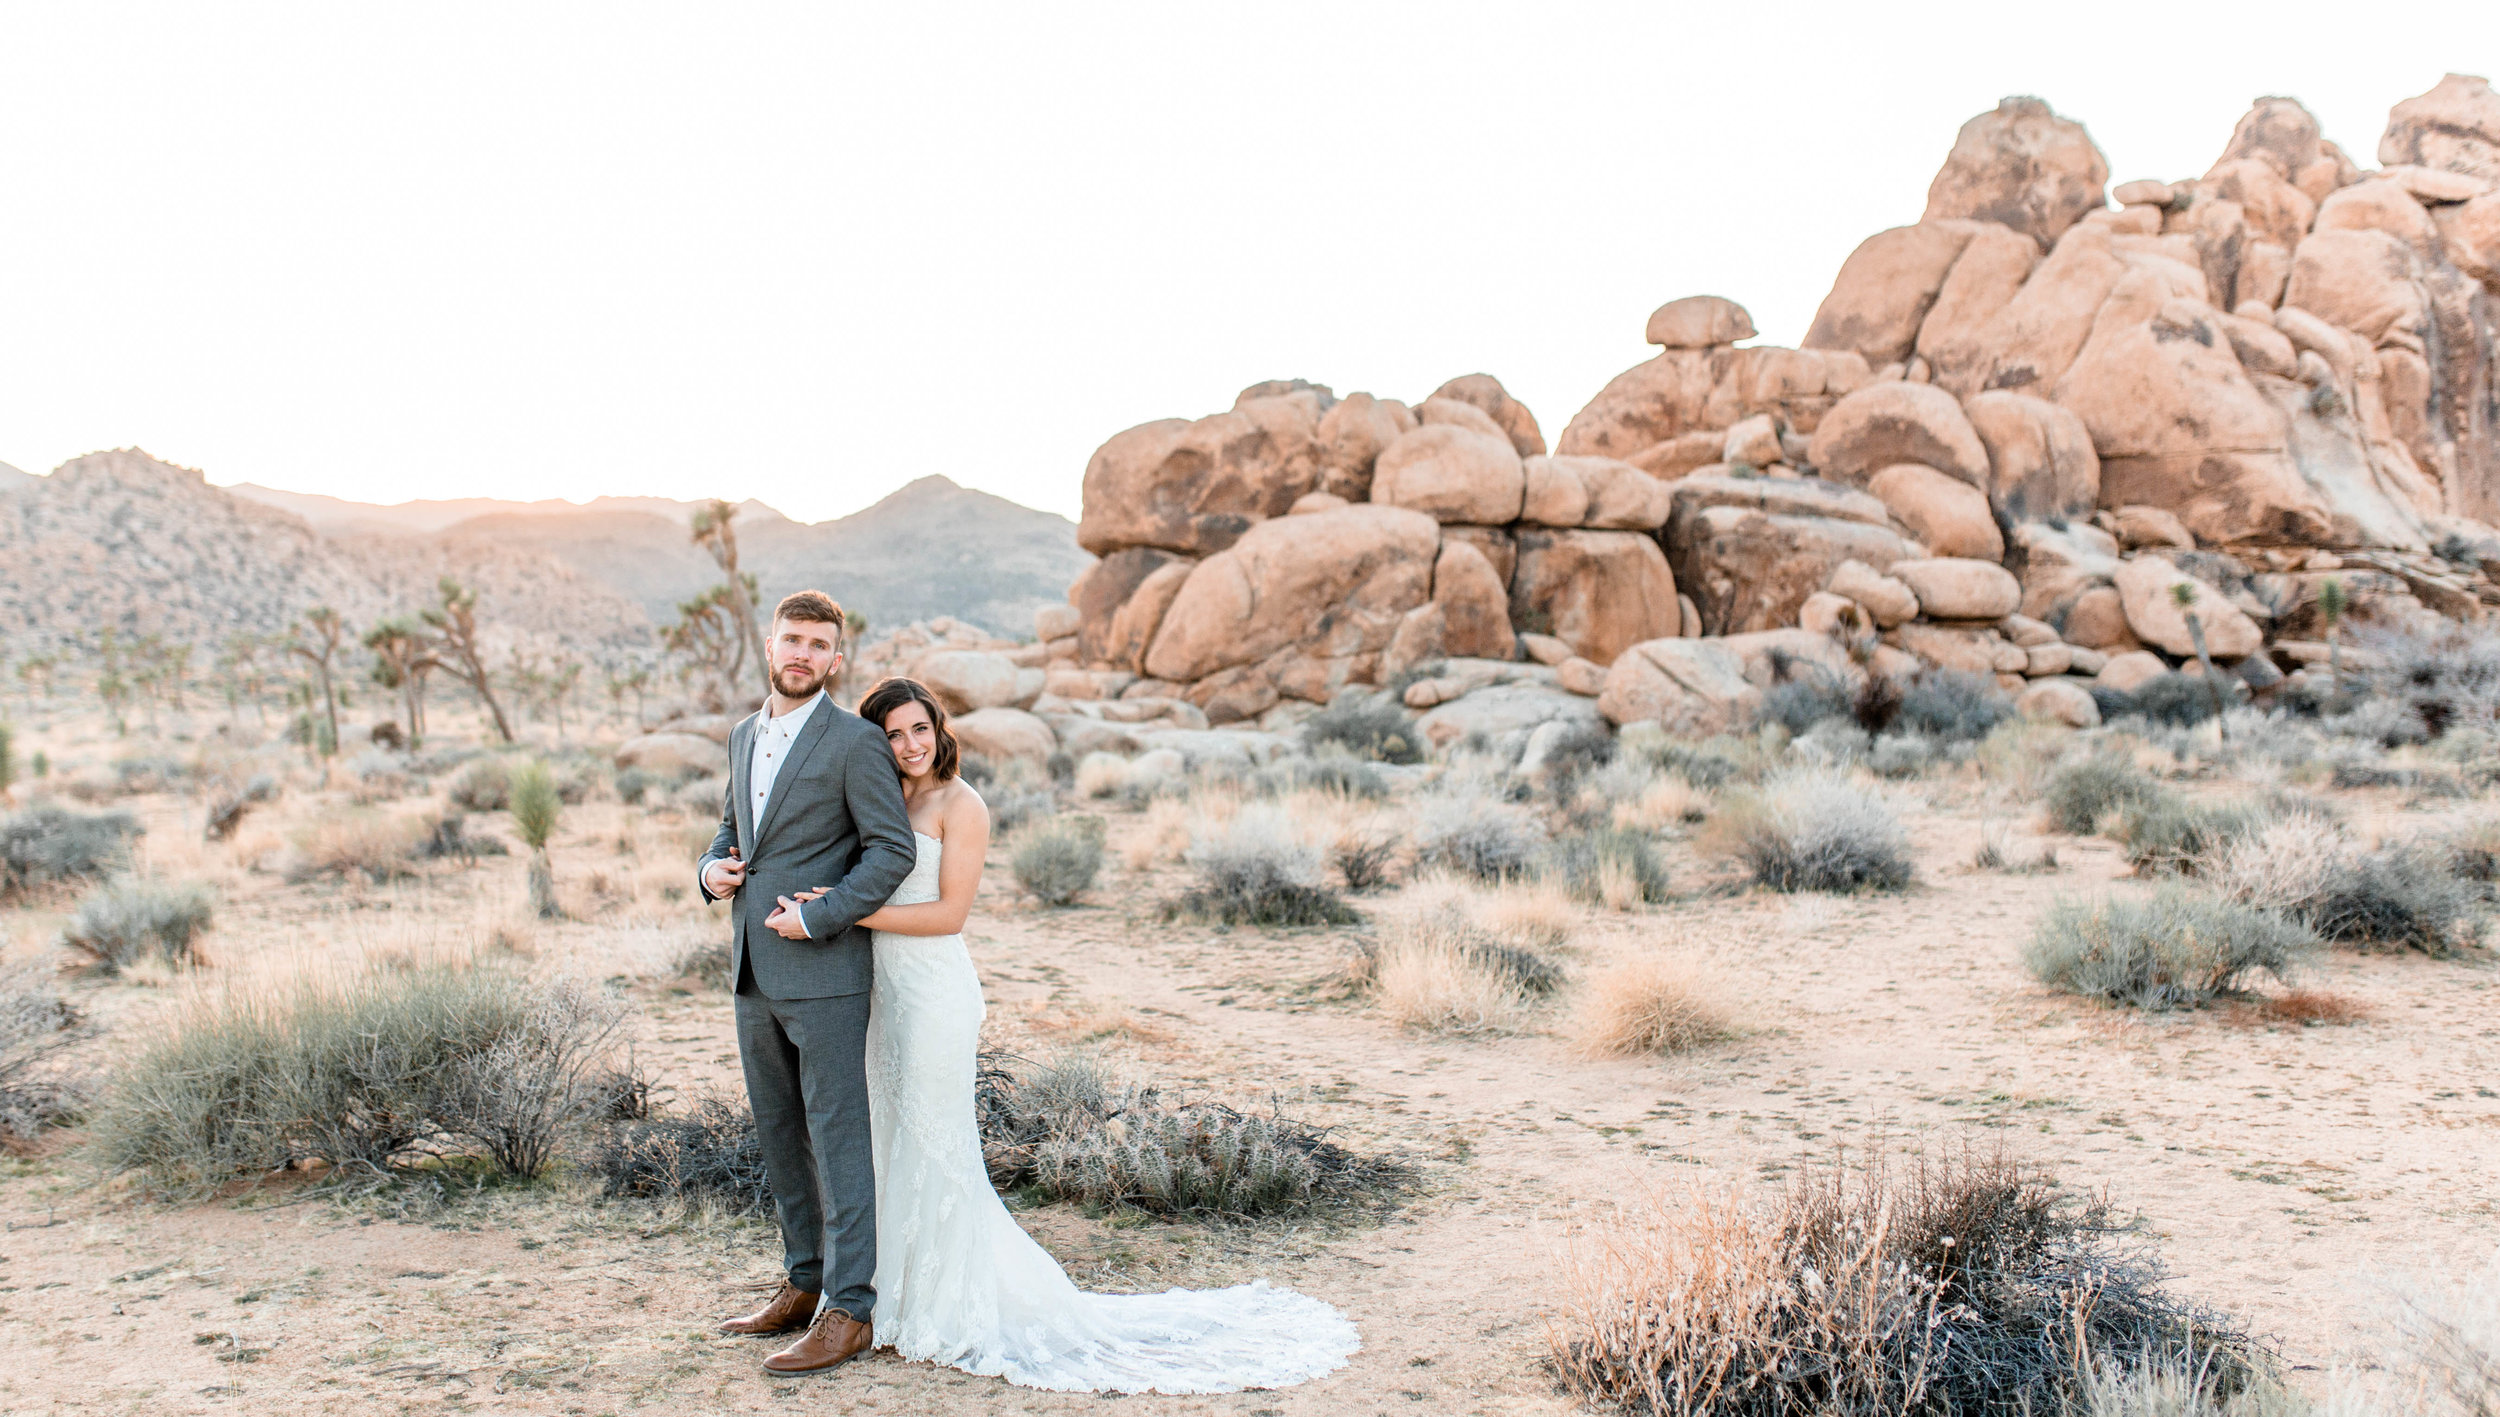 Nicole-Daacke-Photography-Adventurous-Elopement-Intimiate-Wedding-Destination-Wedding-Joshua-Tree-National-Park-desert-golden-Love-Photographer-2.jpg